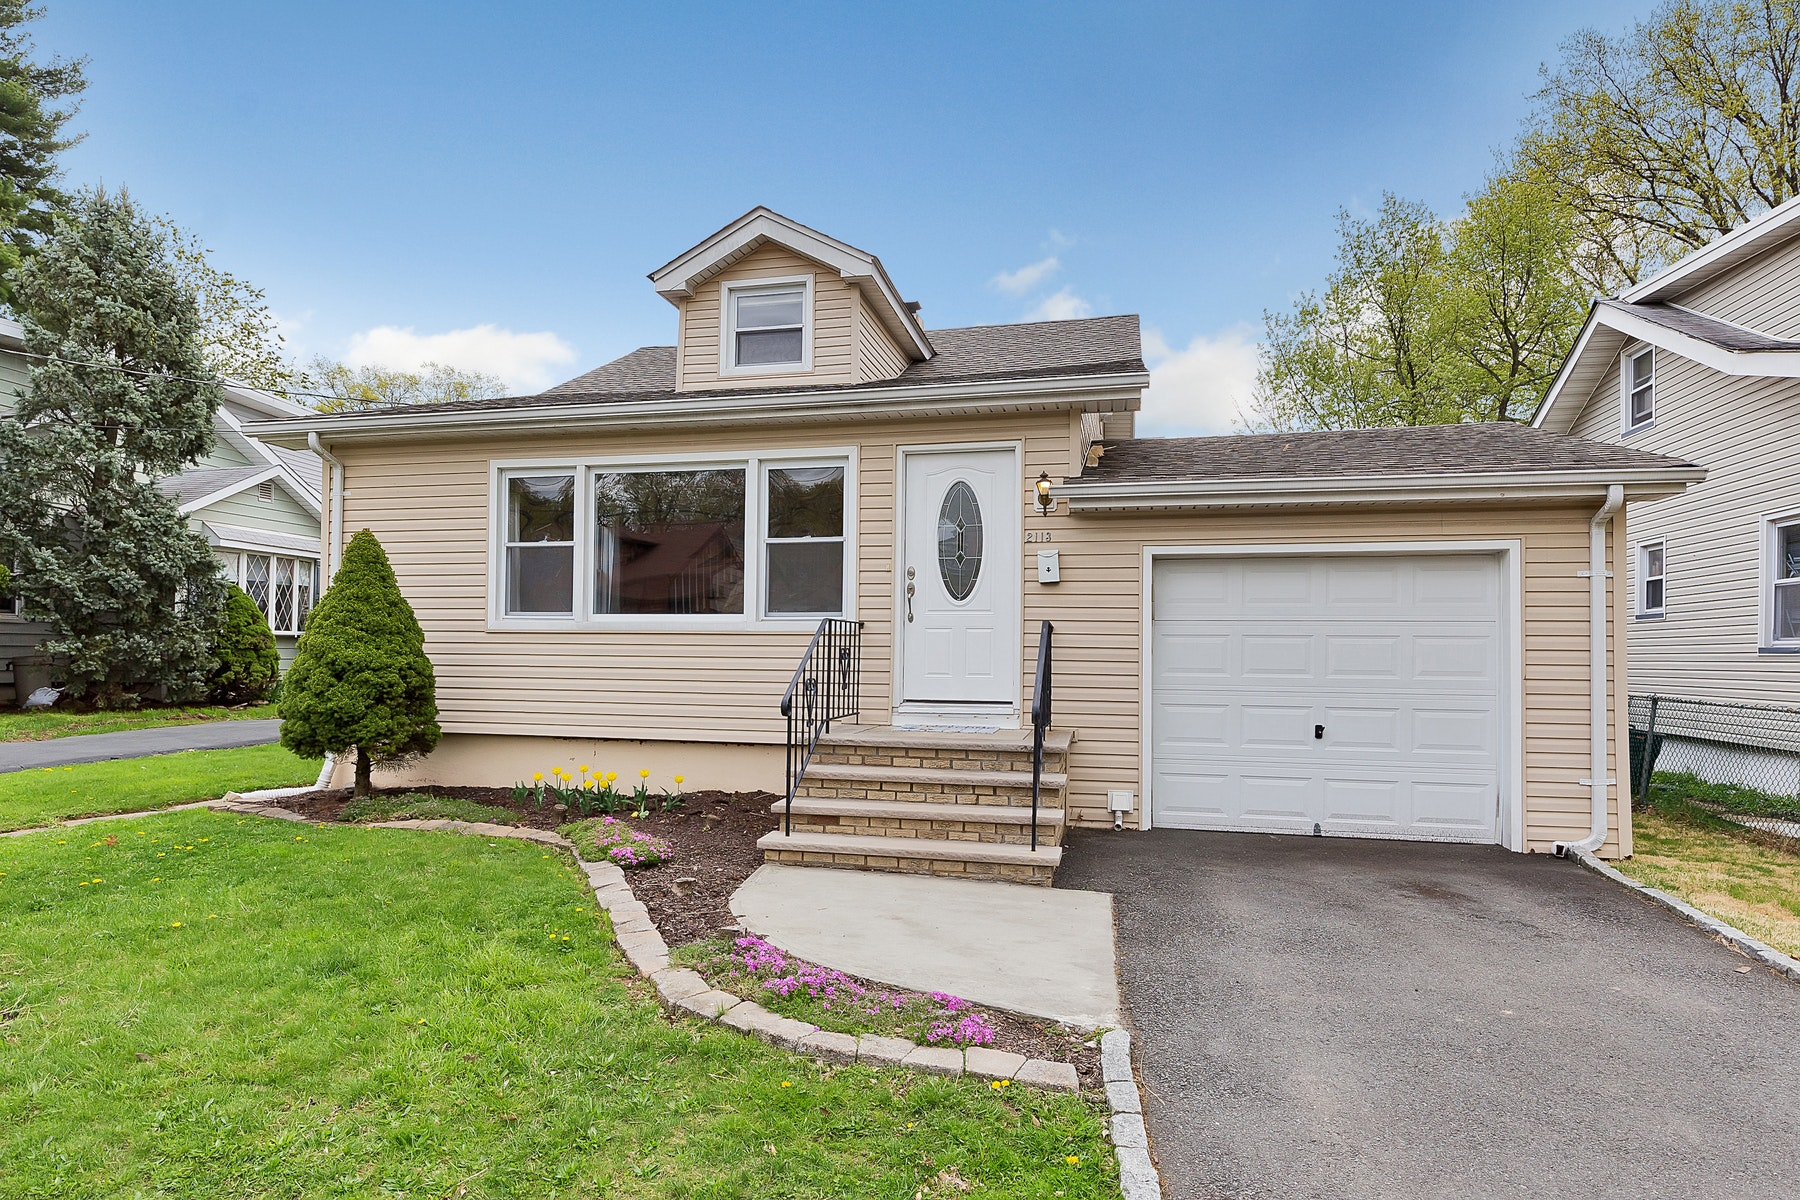 Single Family Homes for Sale at Move Right In! 2113 Evans Street Rahway, New Jersey 07065 United States